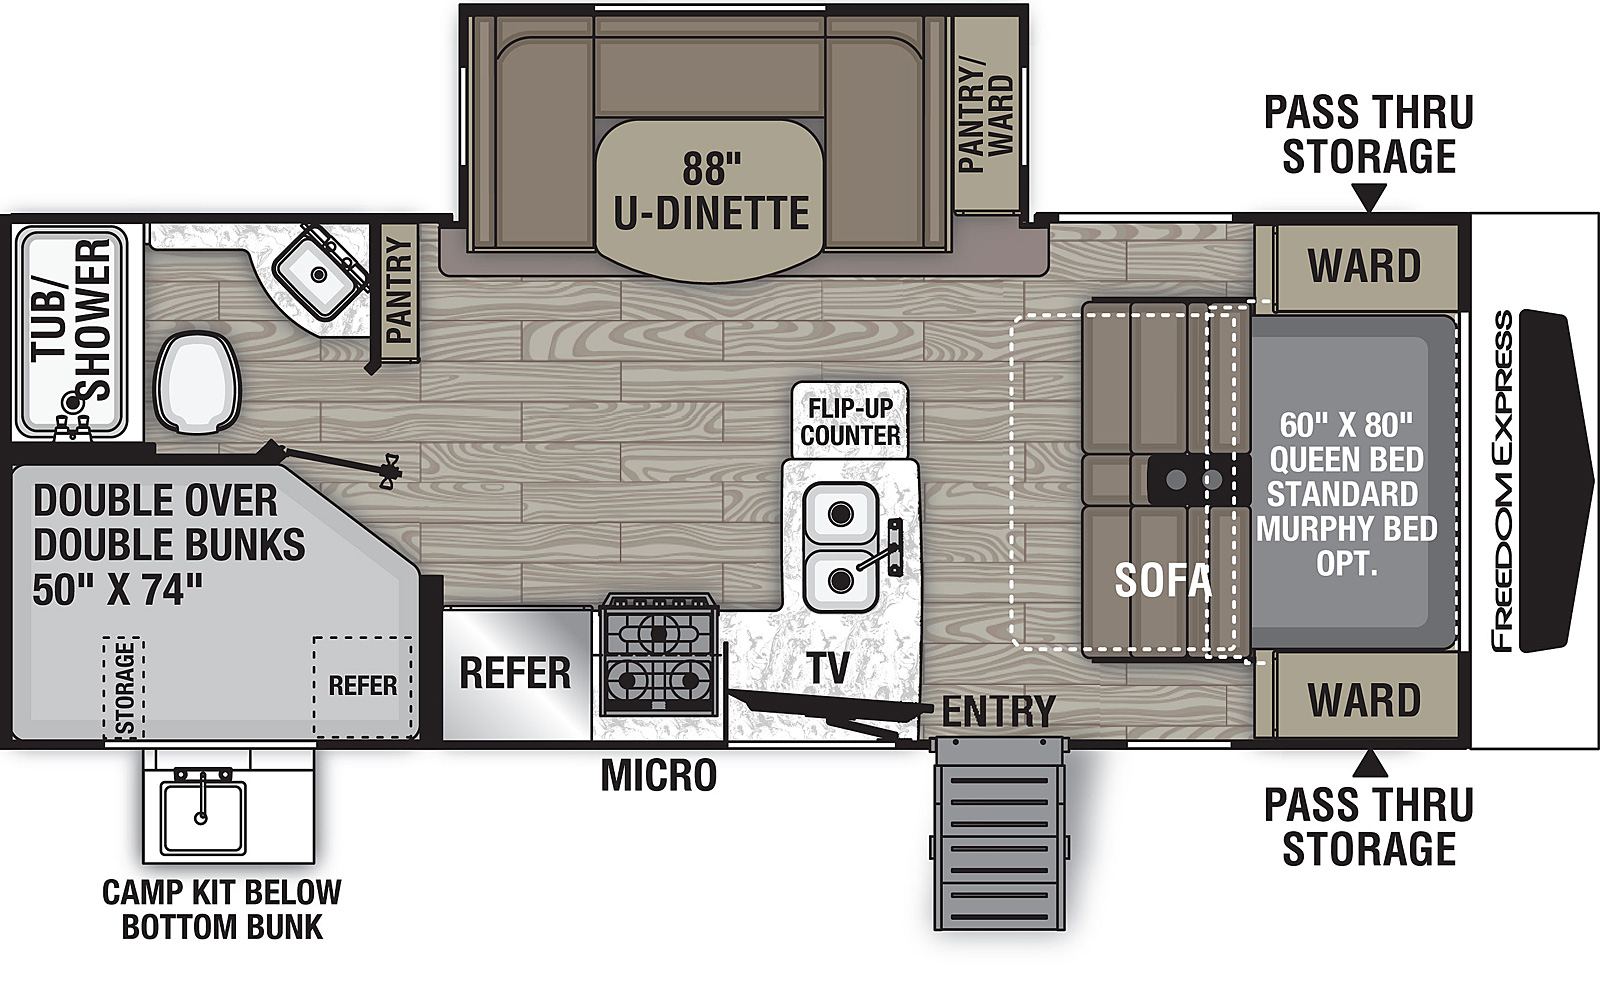 Floorplan for Freedom Express Ultra Lite Travel Trailers model 238 BHS